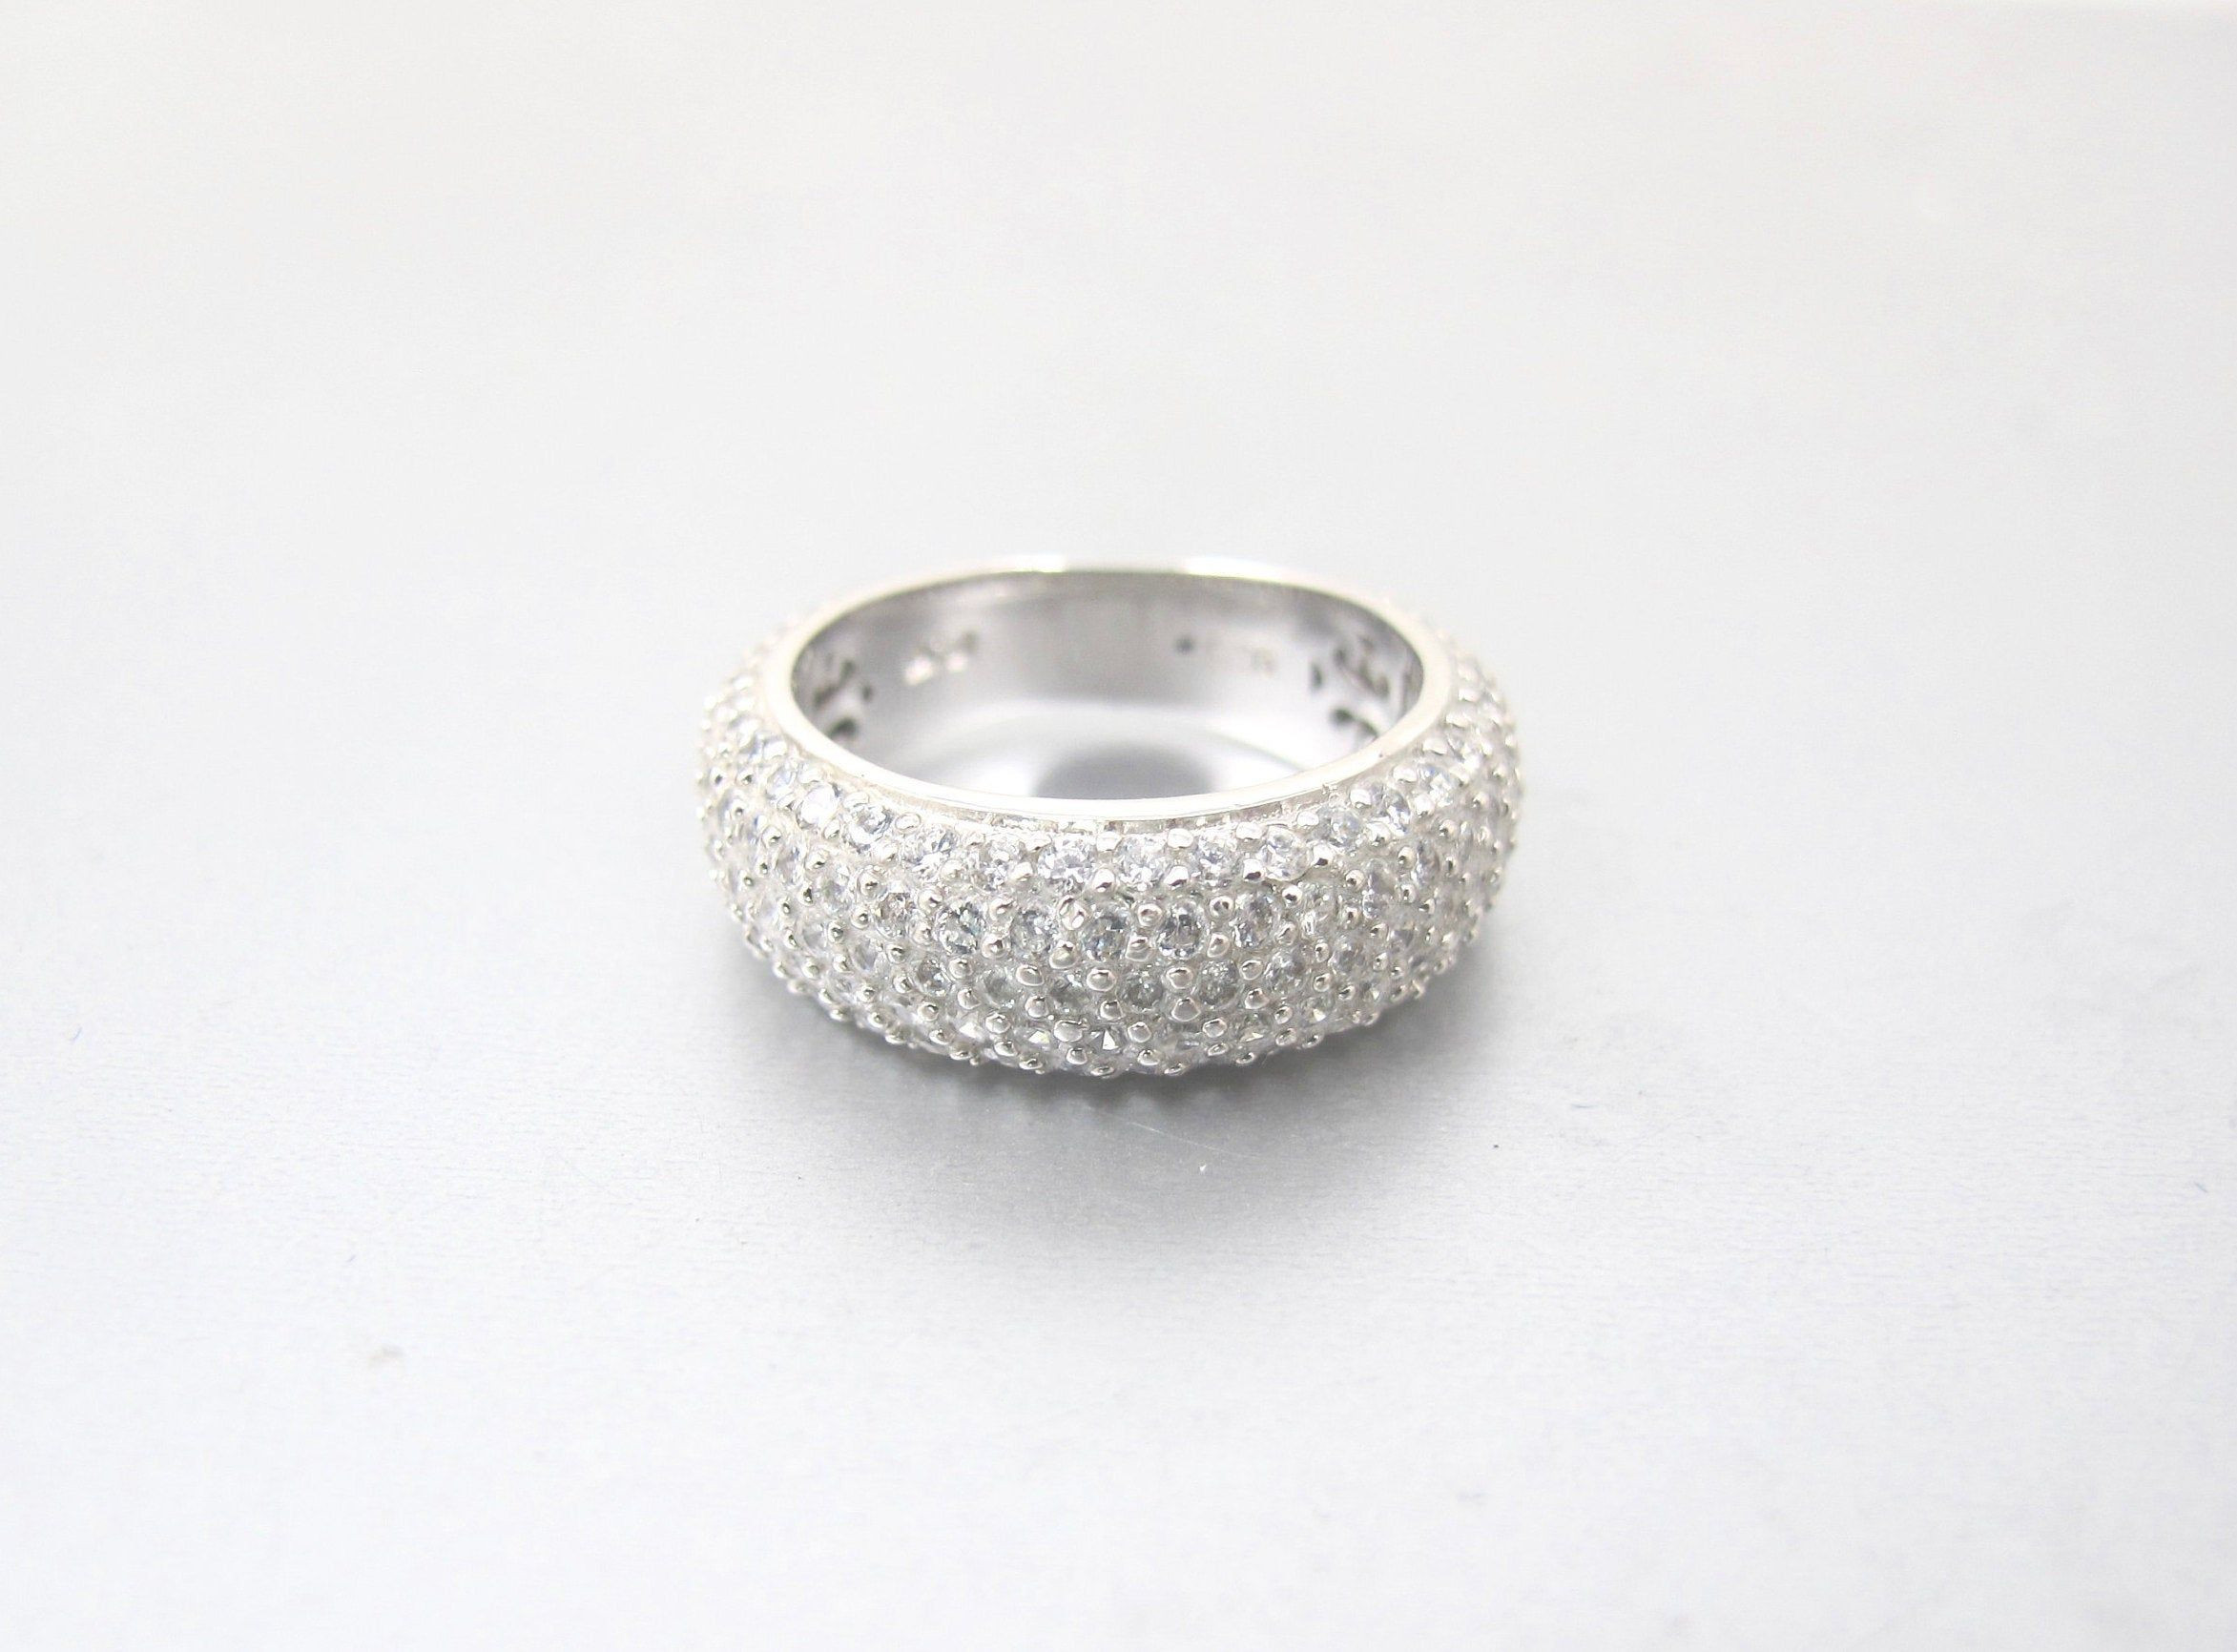 Sterling Cz Eternity Band Ring Vintage Cubic Zirconia Cigar Band Wedding Ring Anniversary Ring In 2020 Eternity Band Ring Anniversary Rings Diamond Rings Bands